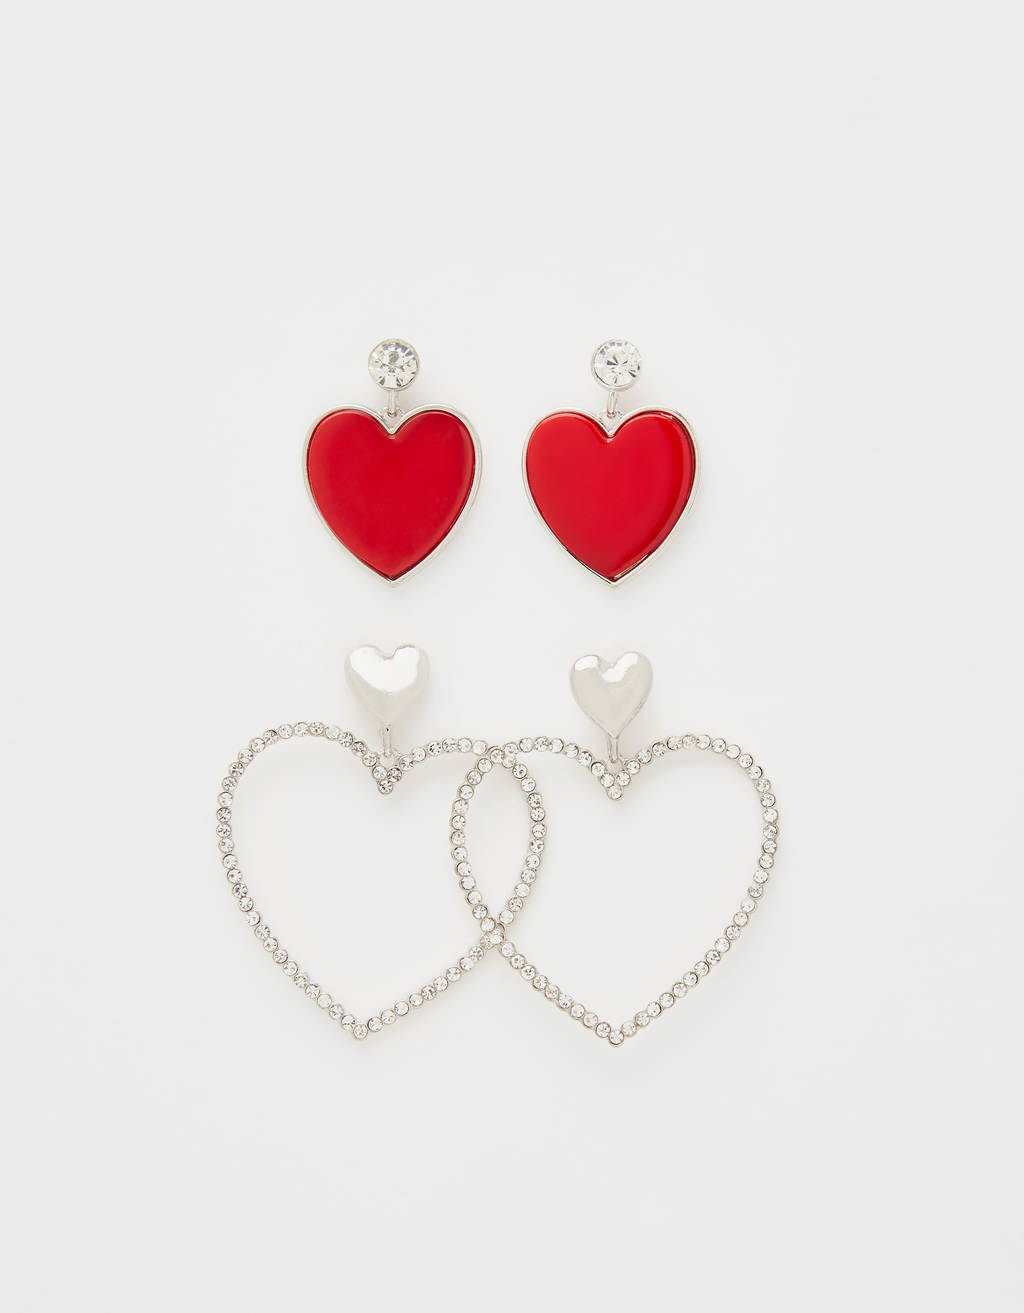 Set of heart earrings